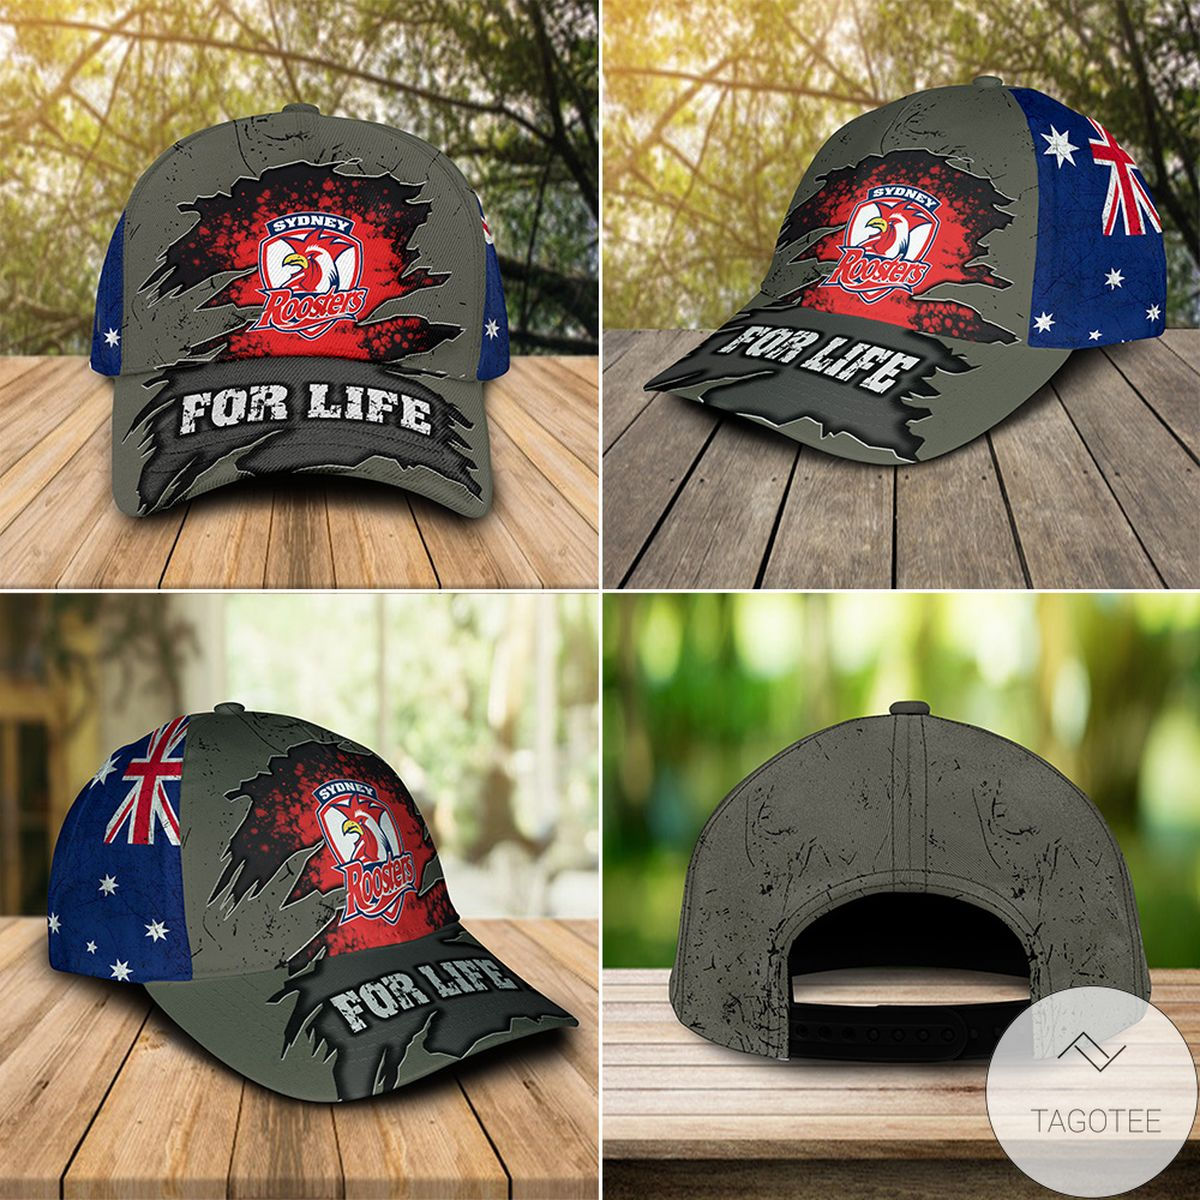 Sydney Roosters For Life Cap